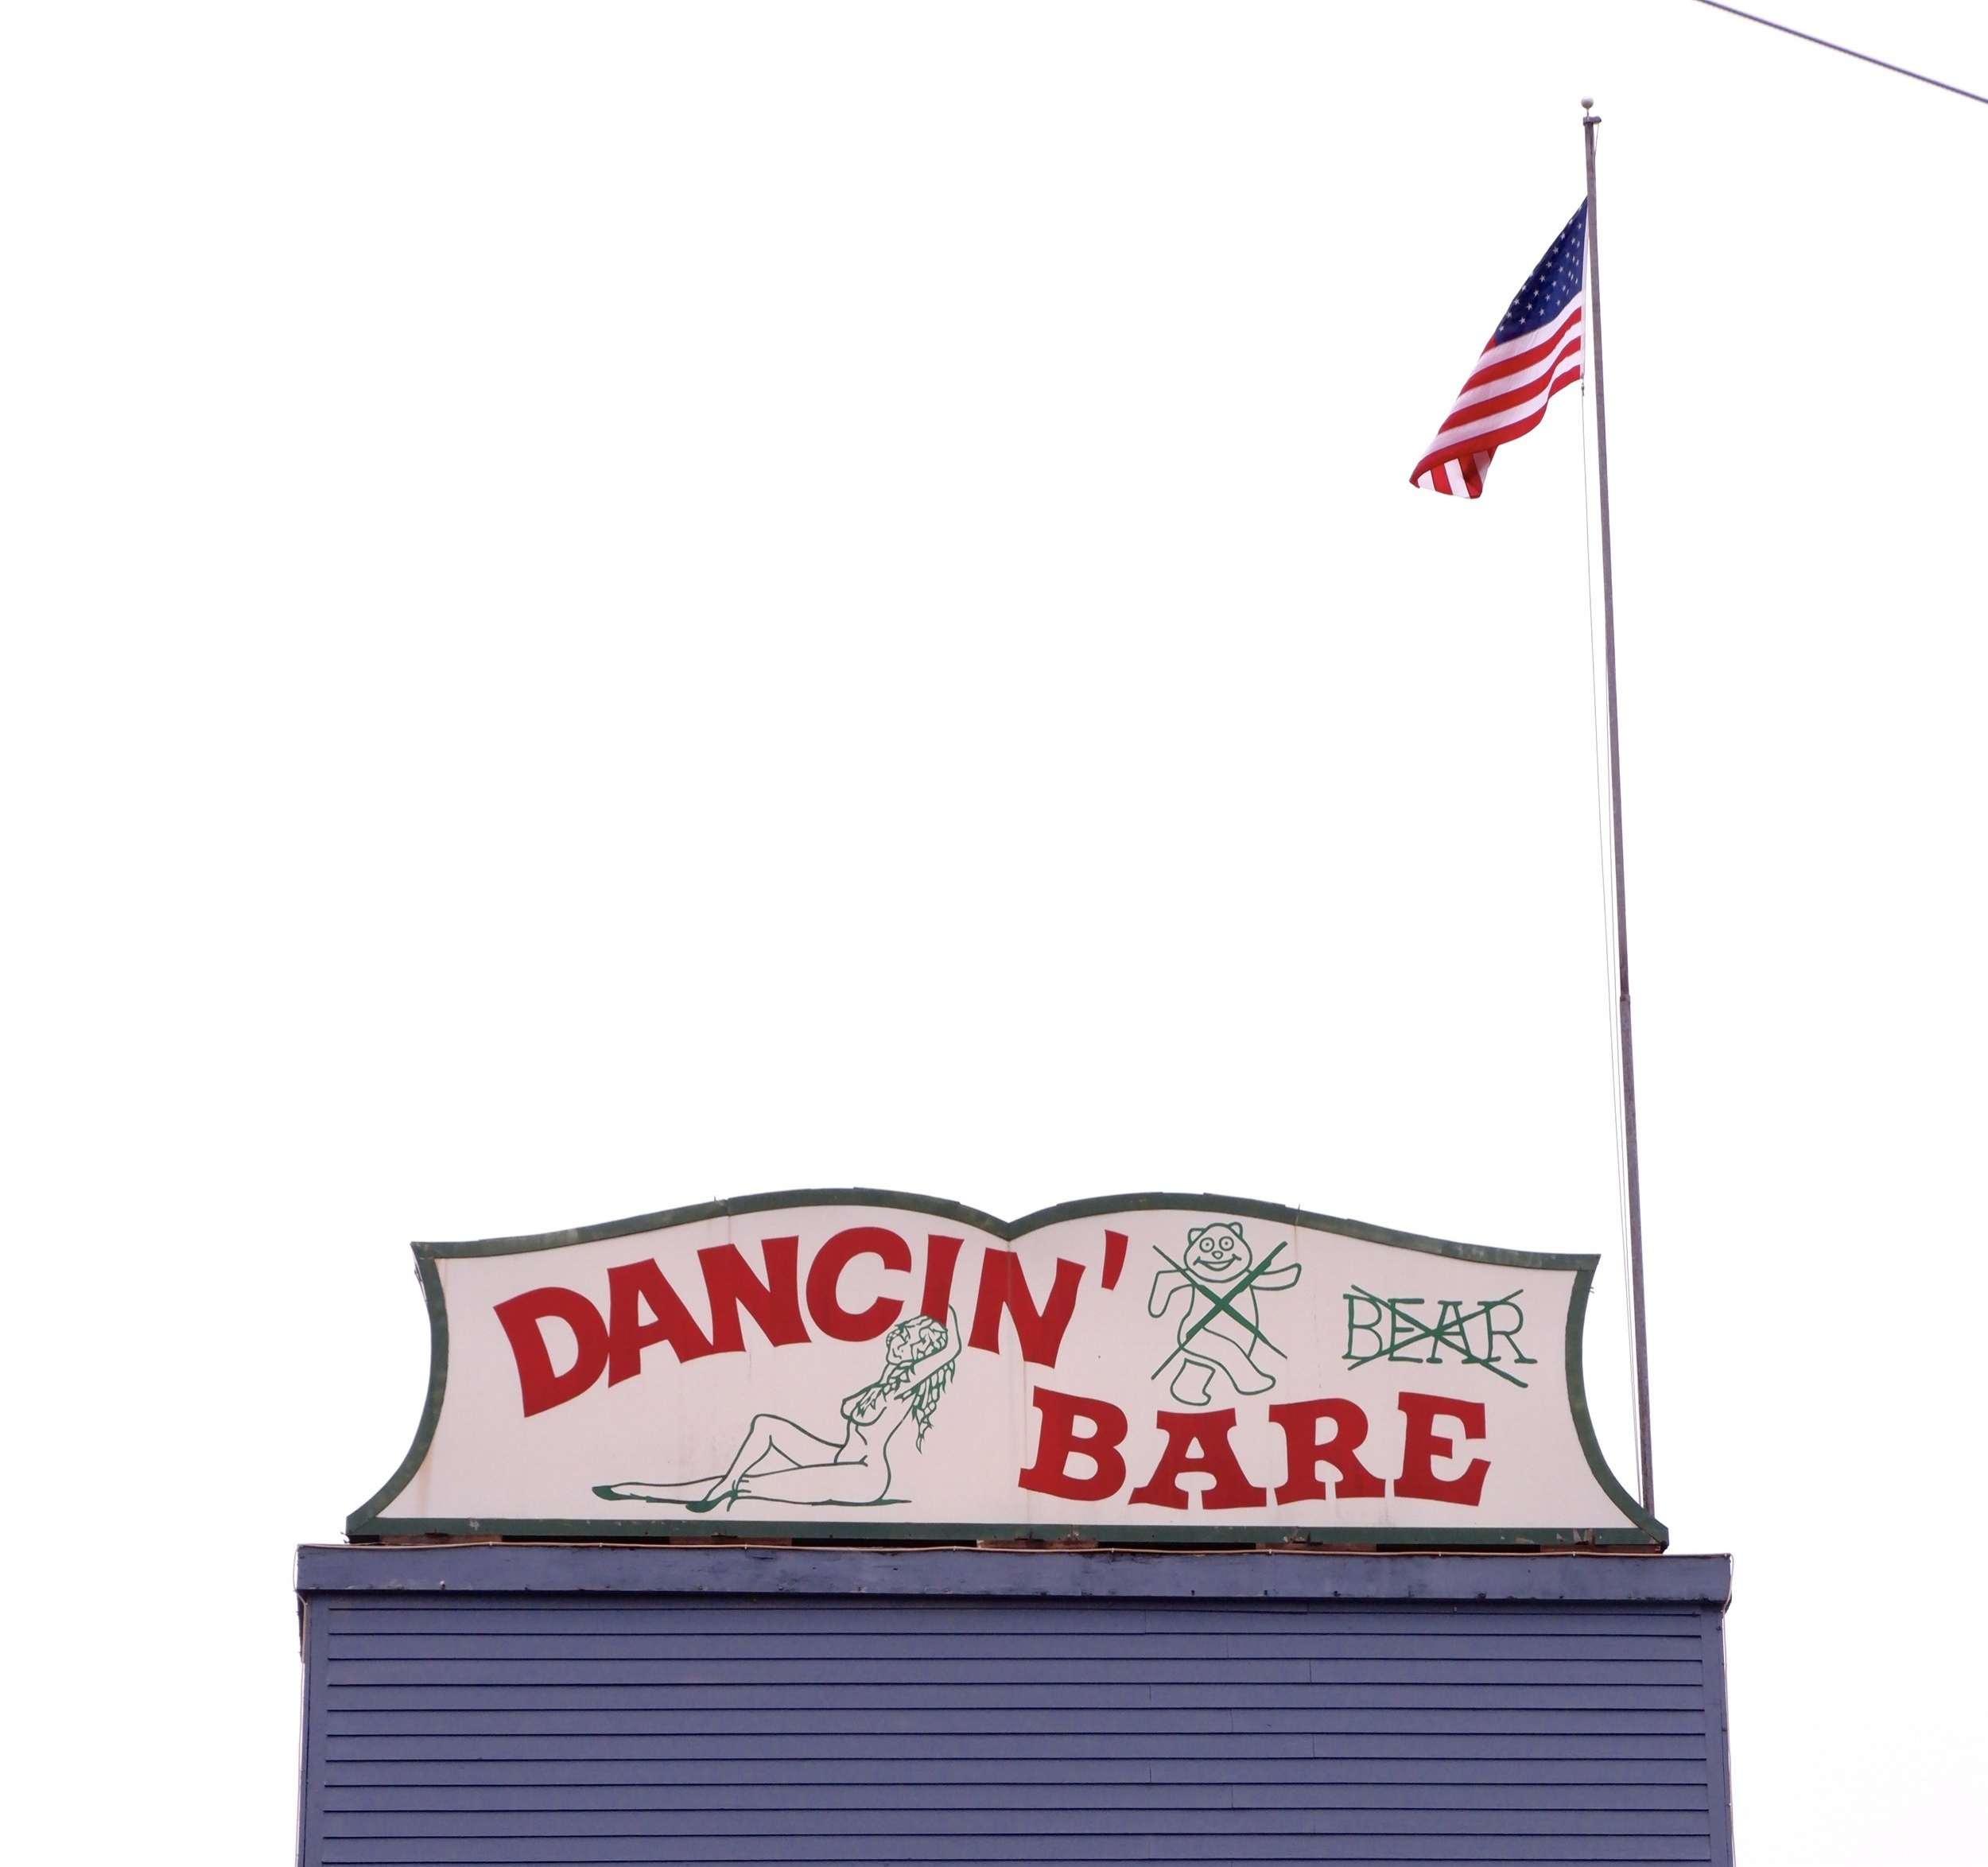 Dancin' Bare, Kenton - Nathaniel Barber blog